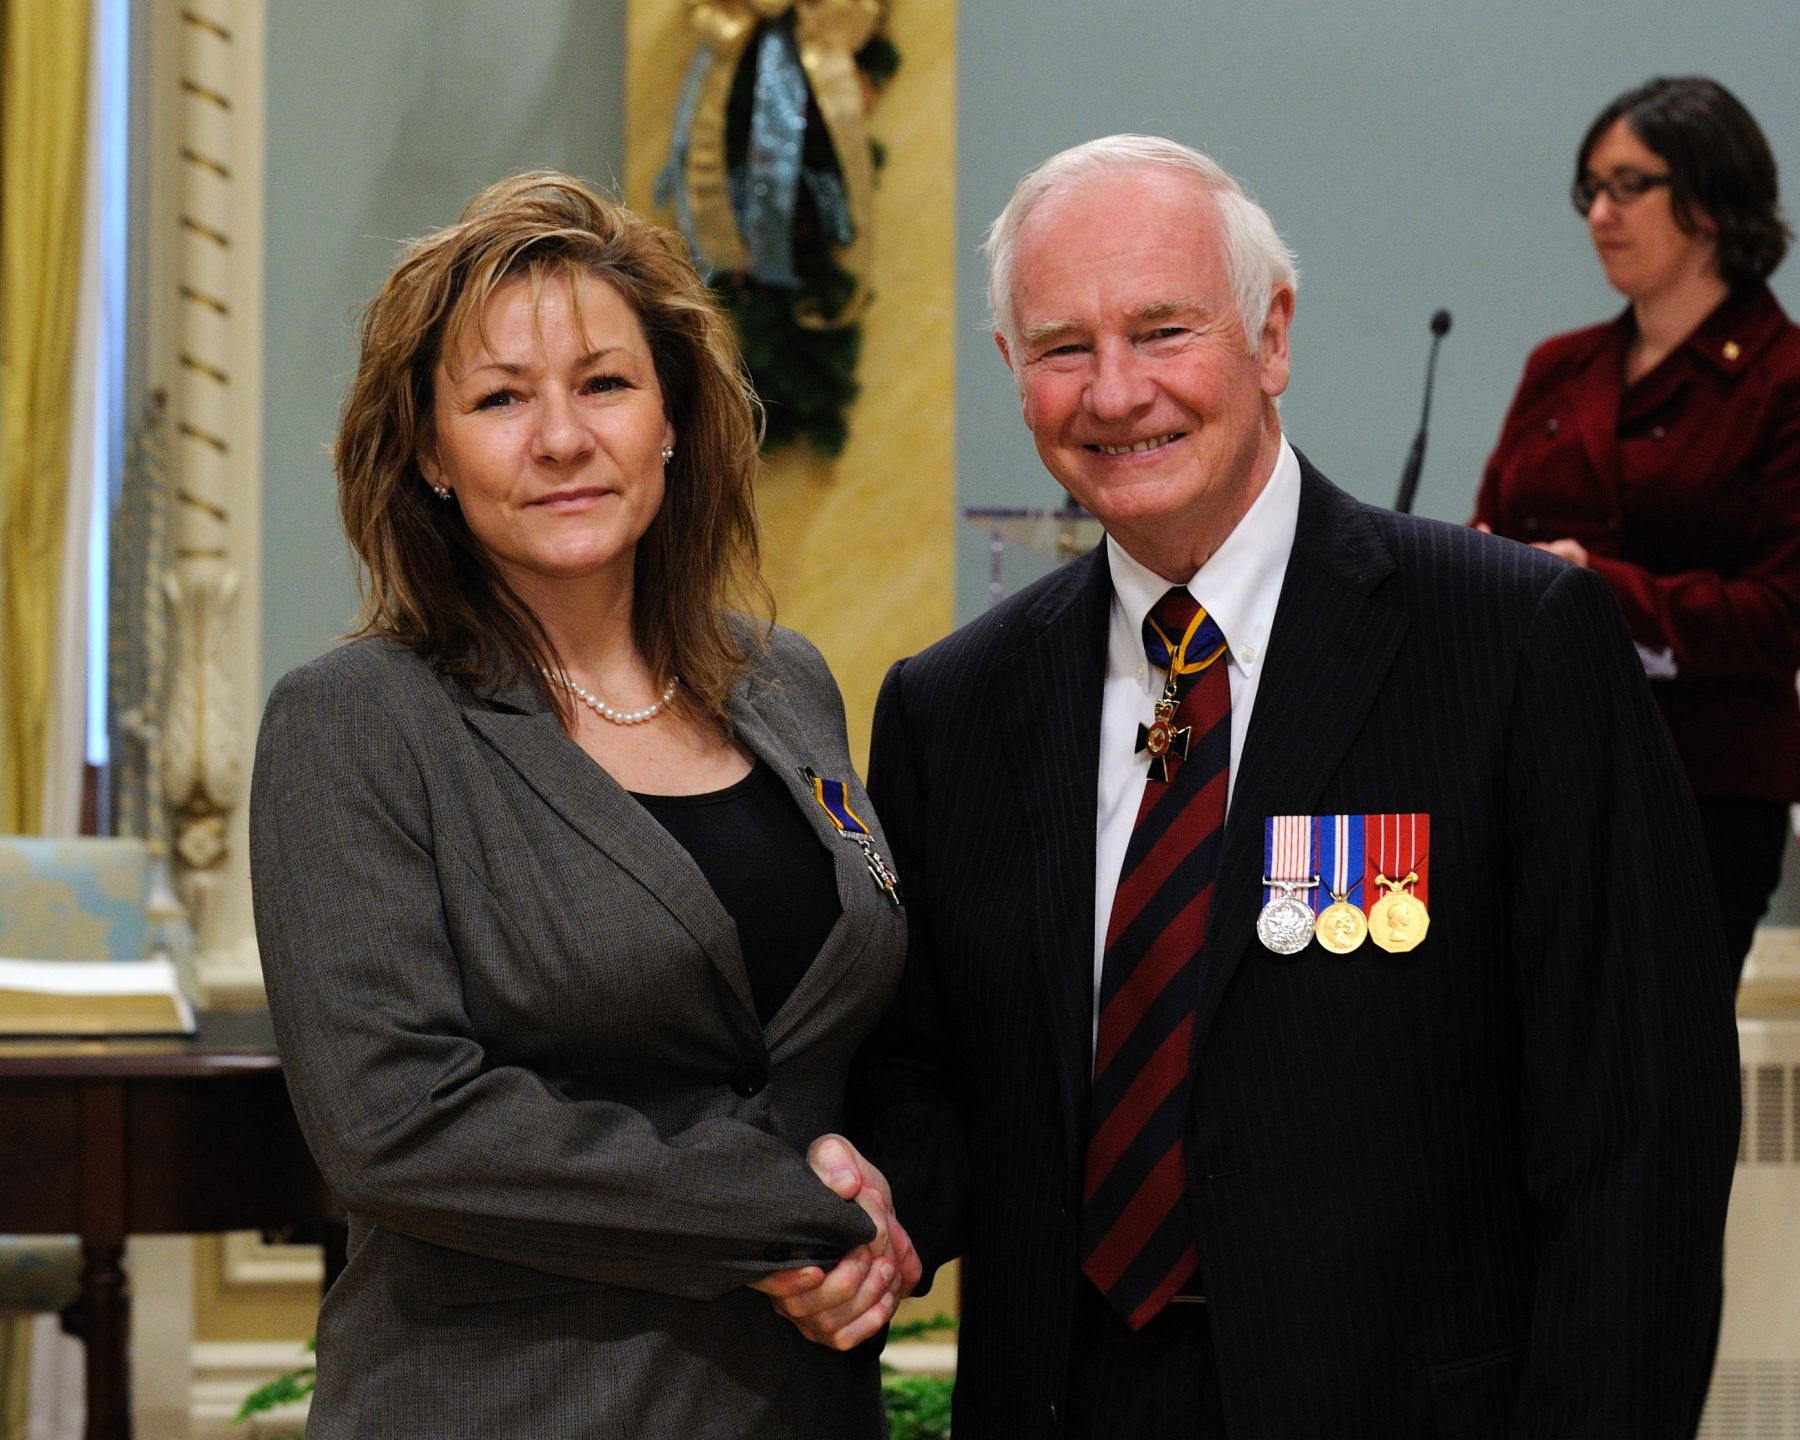 His Excellency presented the Order of Military Merit at the Member level (M.M.M.) to Warrant Officer Sylvie Seaward, M.M.M., C.D., 11 Canadian Forces Health Services Centre, Shilo, Manitoba.